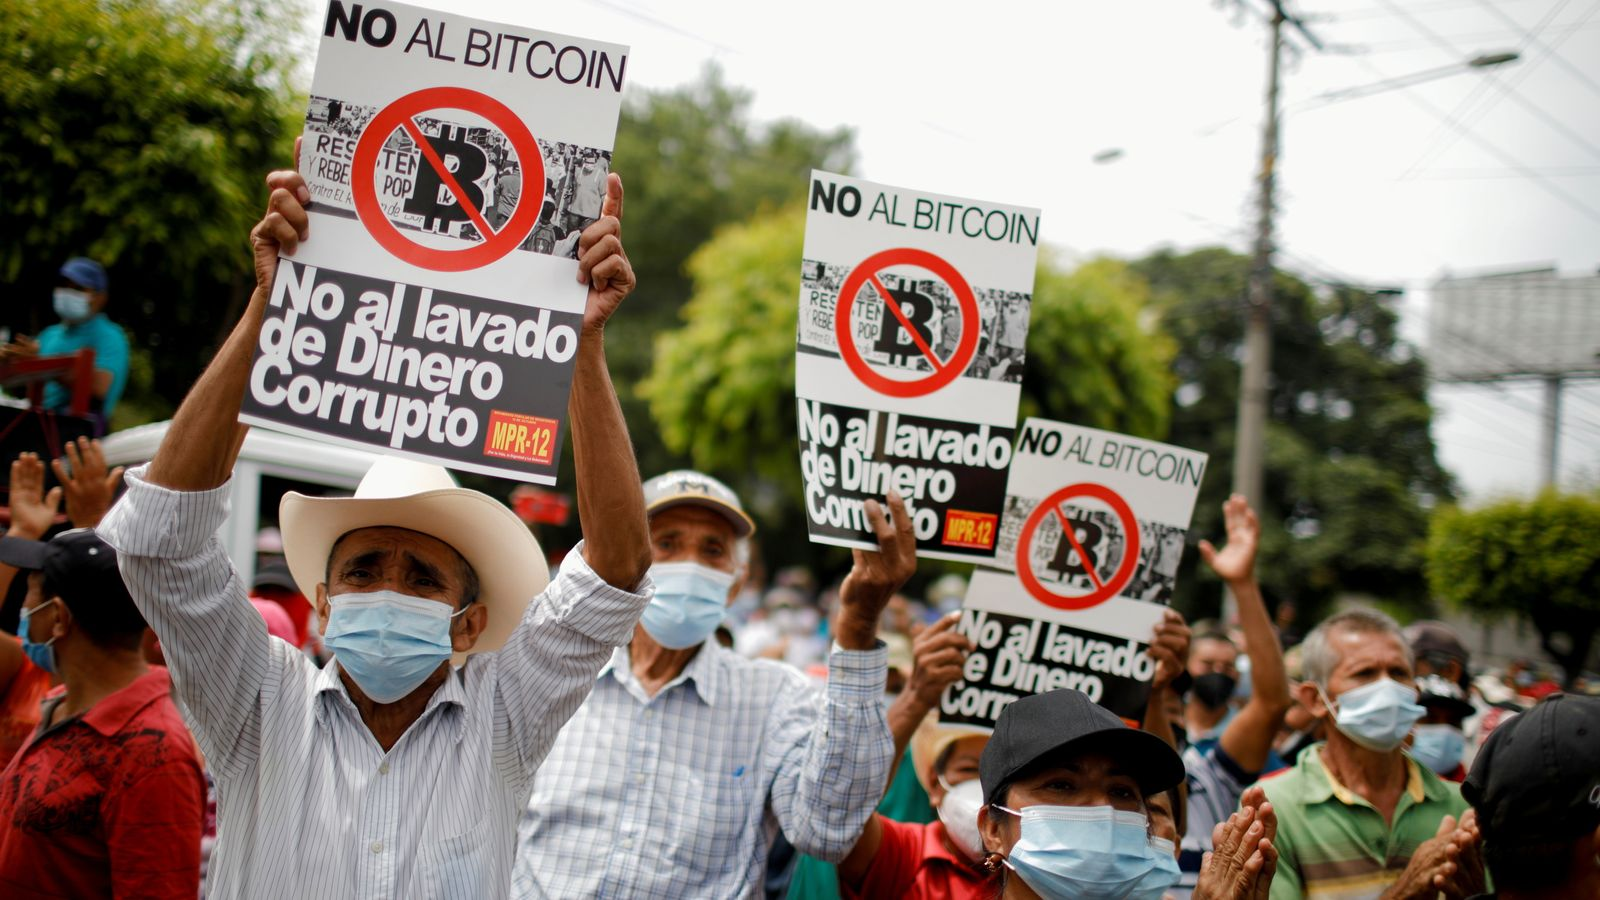 Bitcoin: Protests and confusion in El Salvador as country prepares to make cryptocurrency legal tender